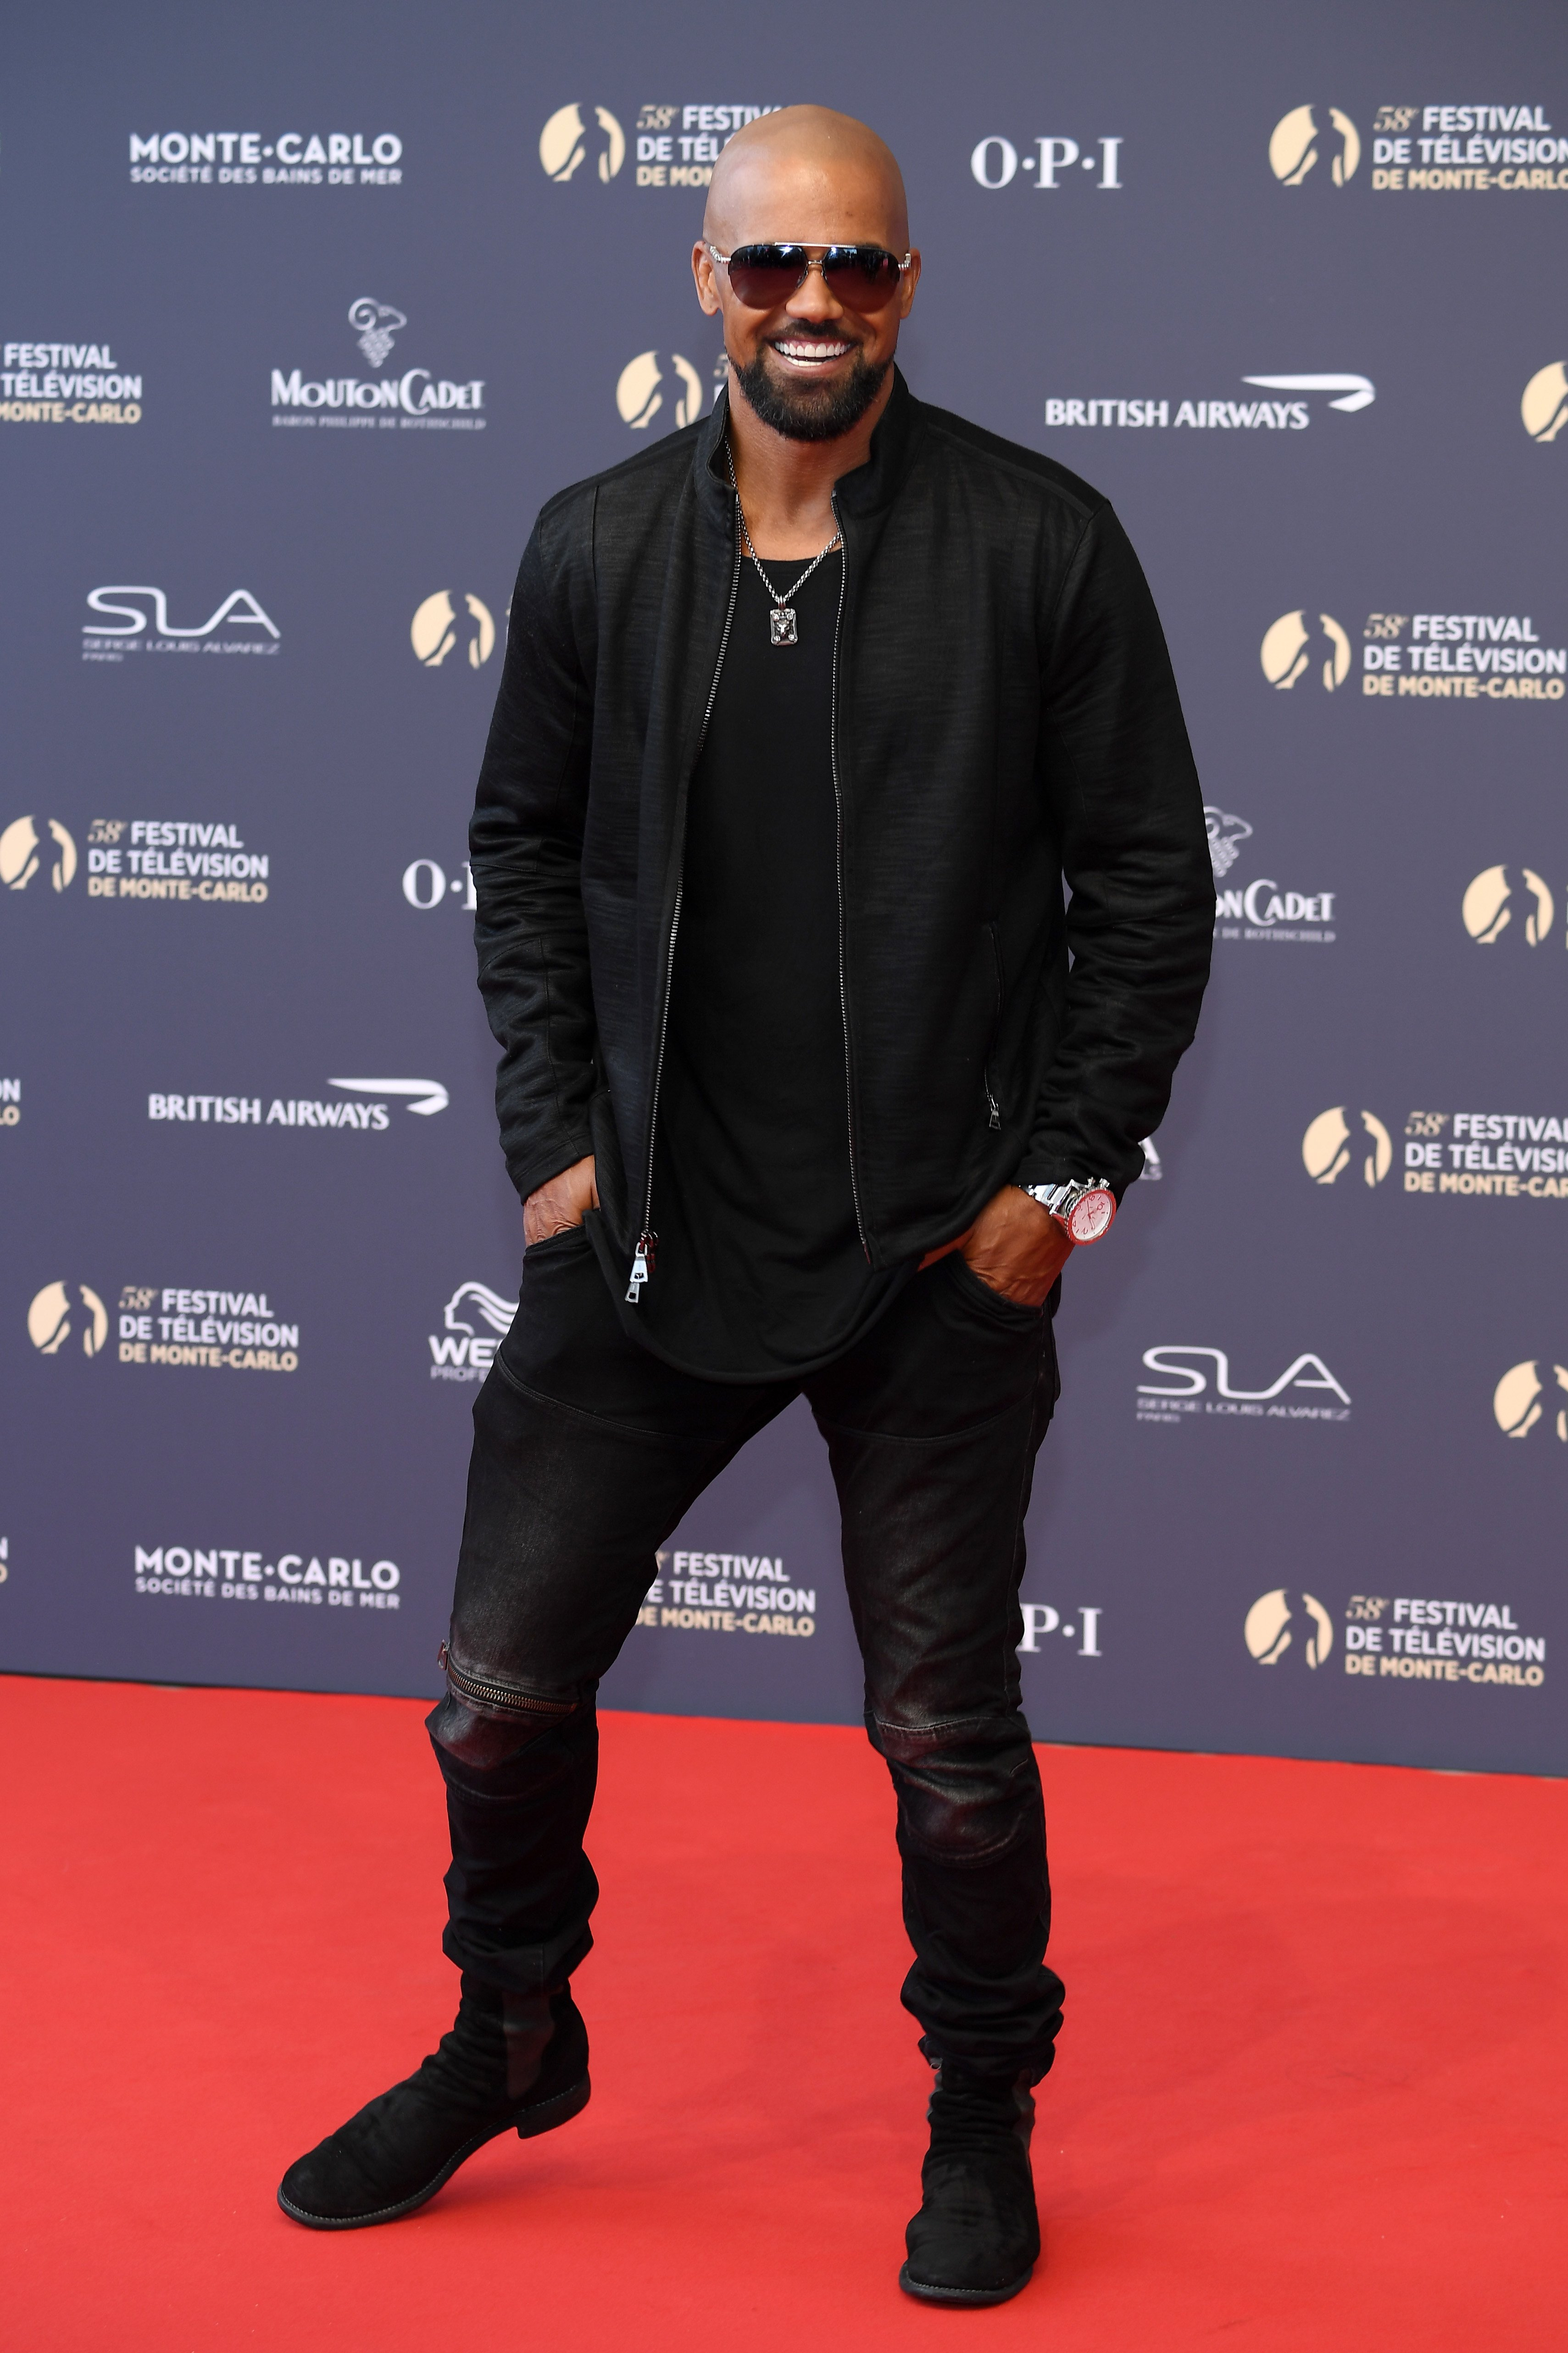 Shemar Moore on June 15, 2018 in Monte-Carlo, Monaco | Source: Getty Images